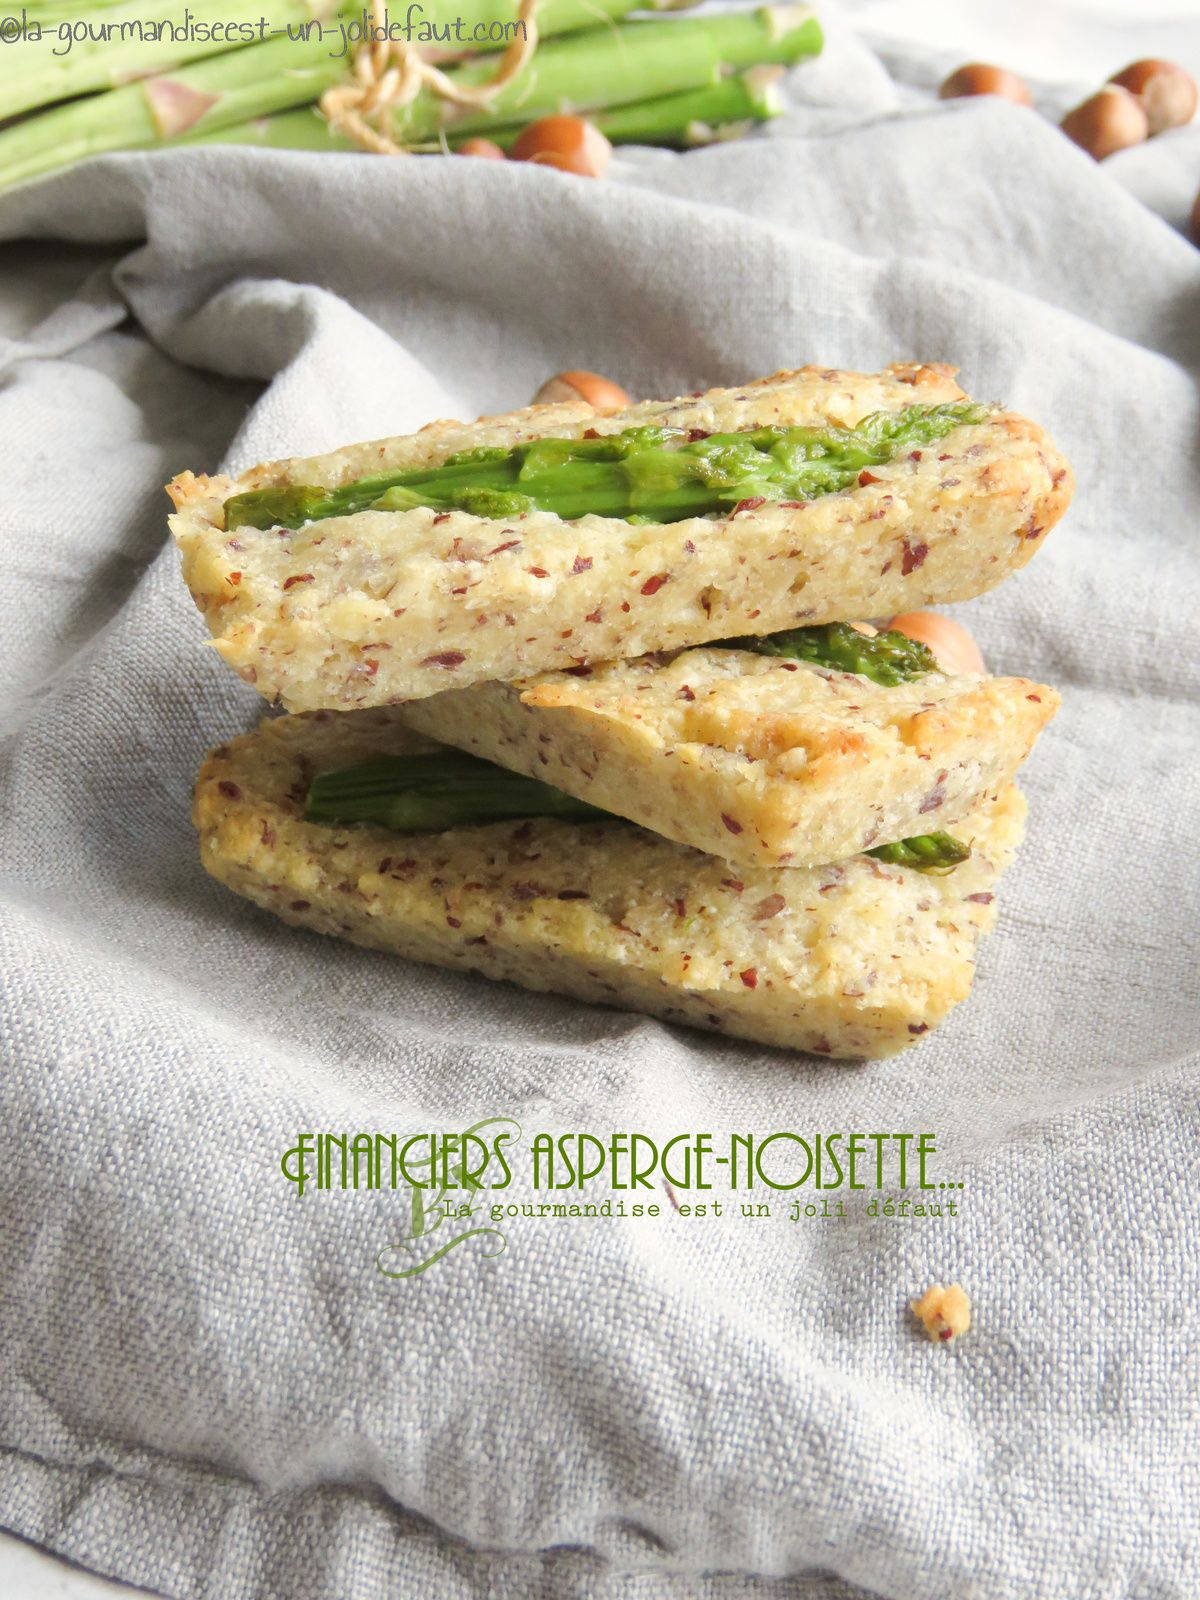 Financiers asperge-noisette